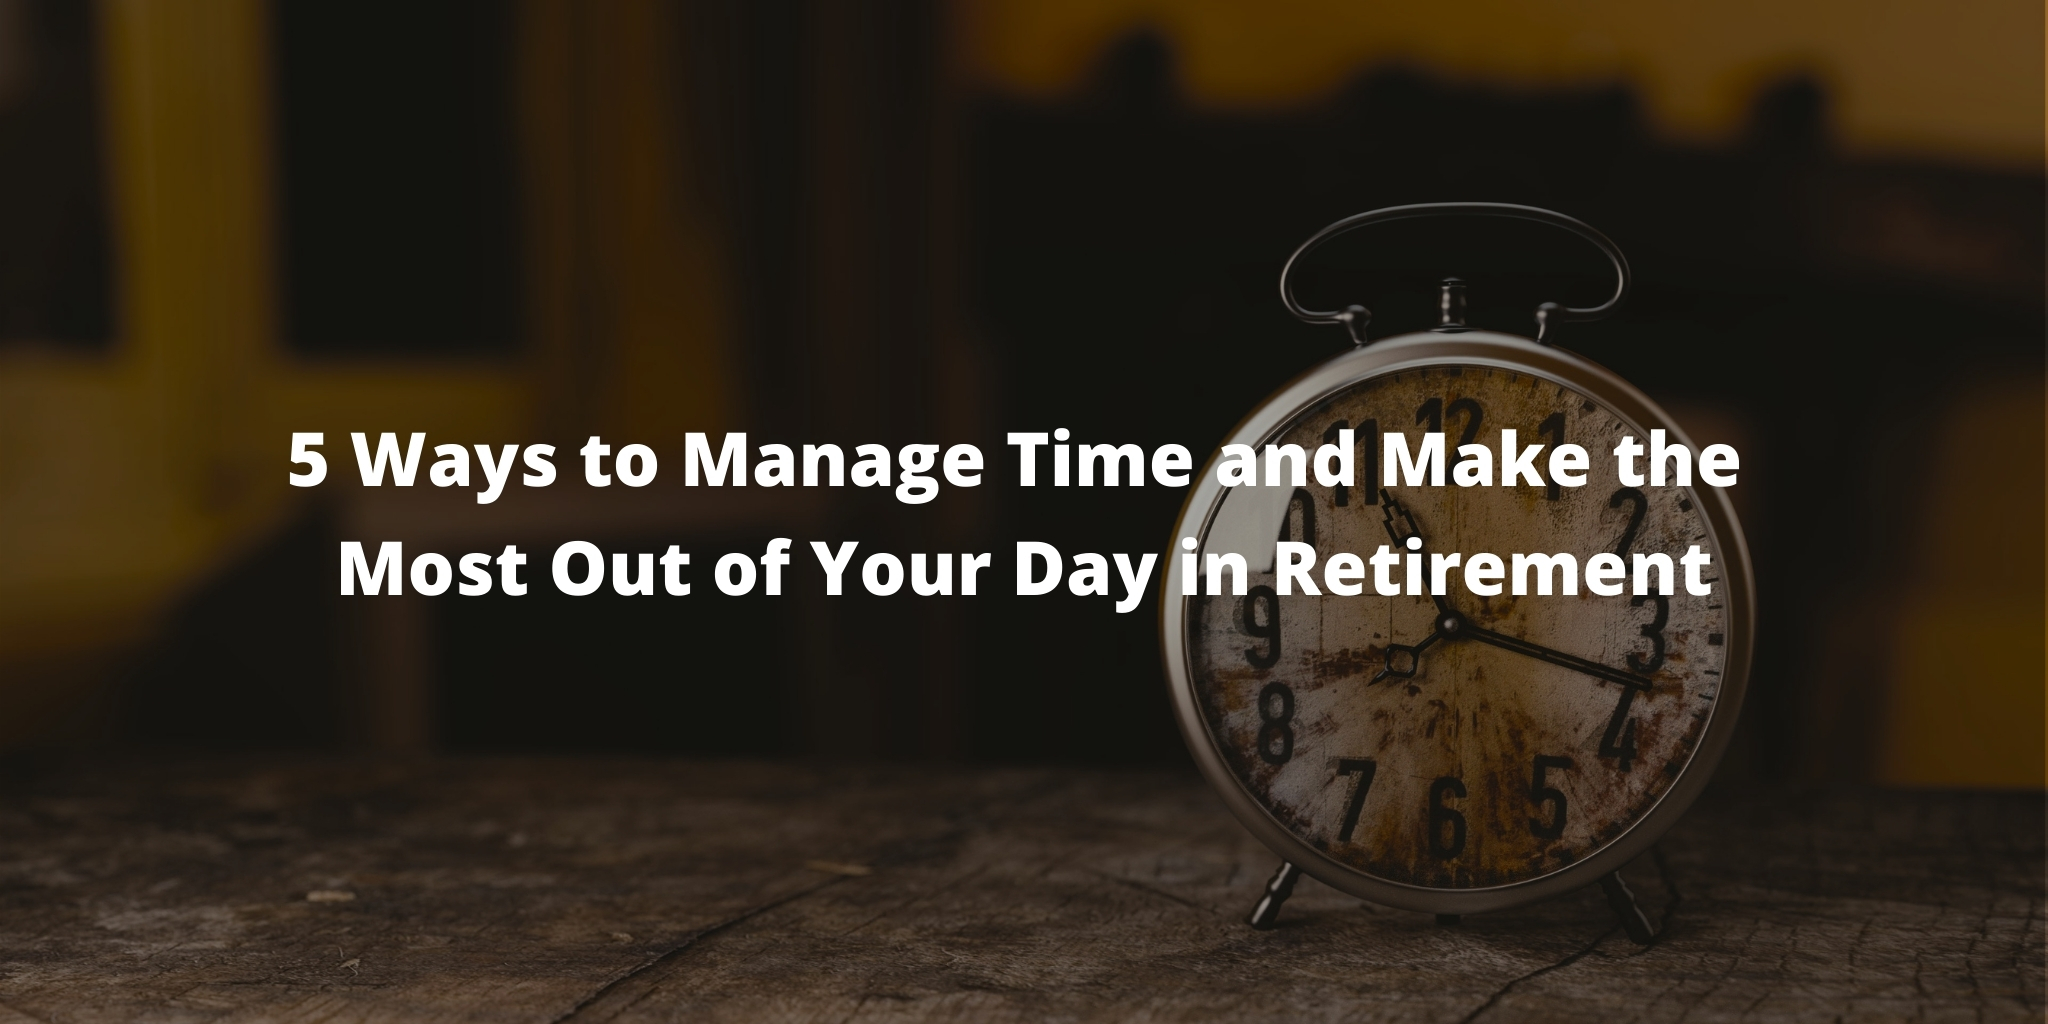 5 Ways to Manage Time and Make the Most Out of Your Day in Retirement